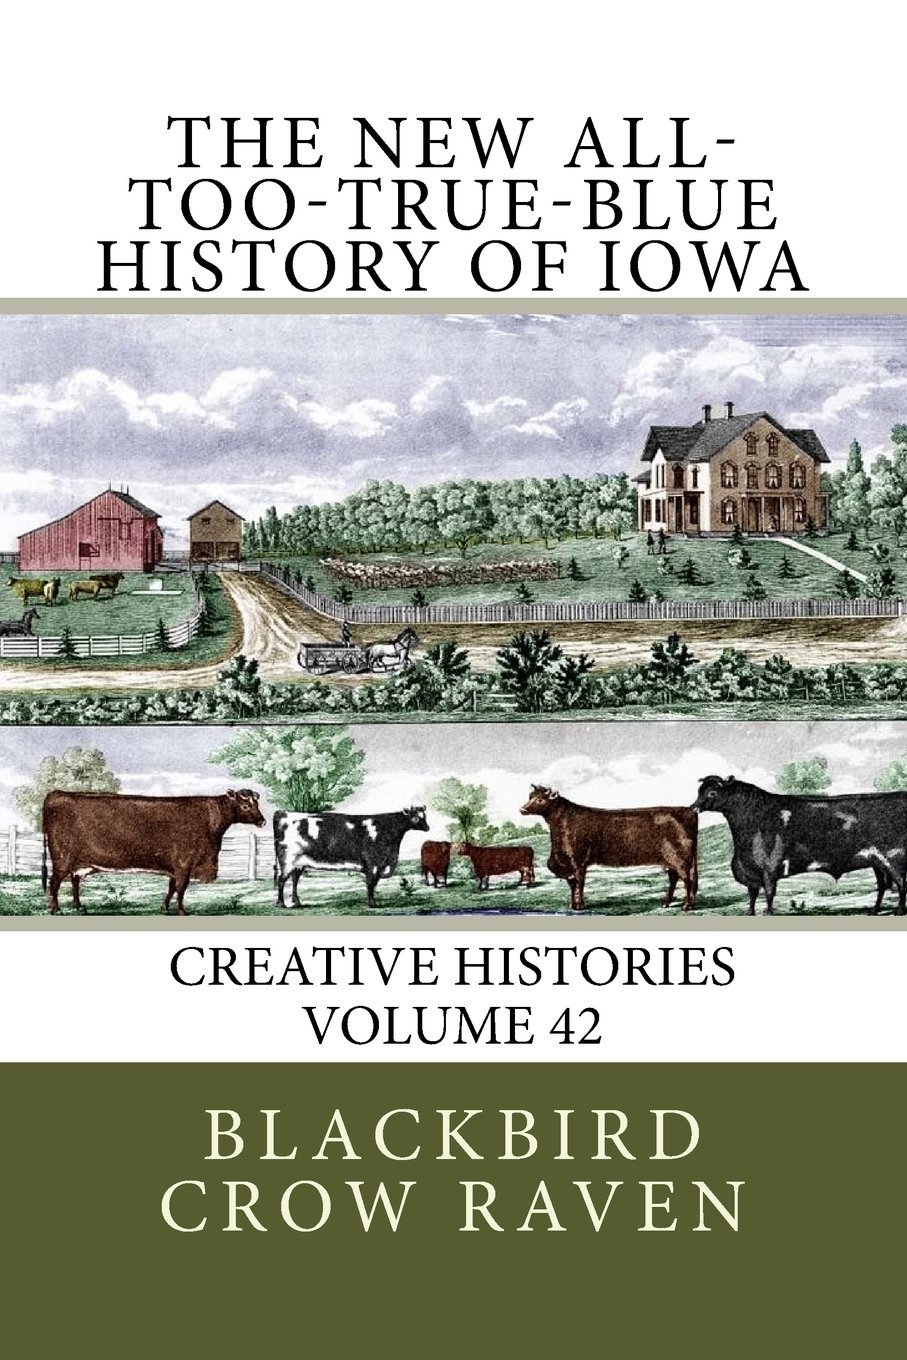 The New All-too-True-Blue History of Iowa (New All-too-True Blue Histories) (Volume 42) pdf epub